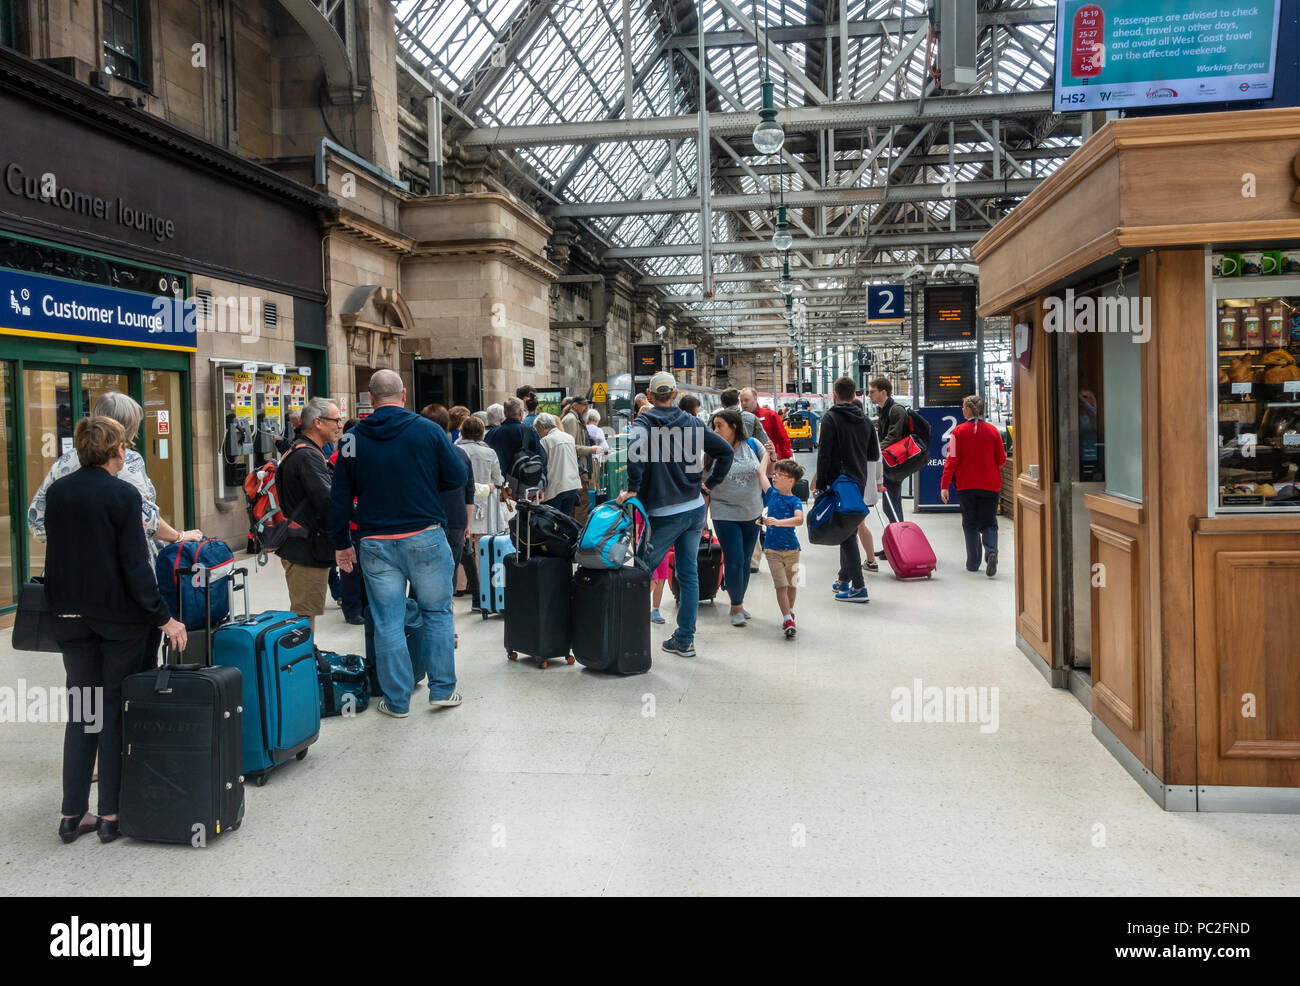 Passengers queueing to board a Virgin train from Platform 1 in Glasgow Central Station. Train travel, rolling luggage, standing, waiting in line Stock Photo